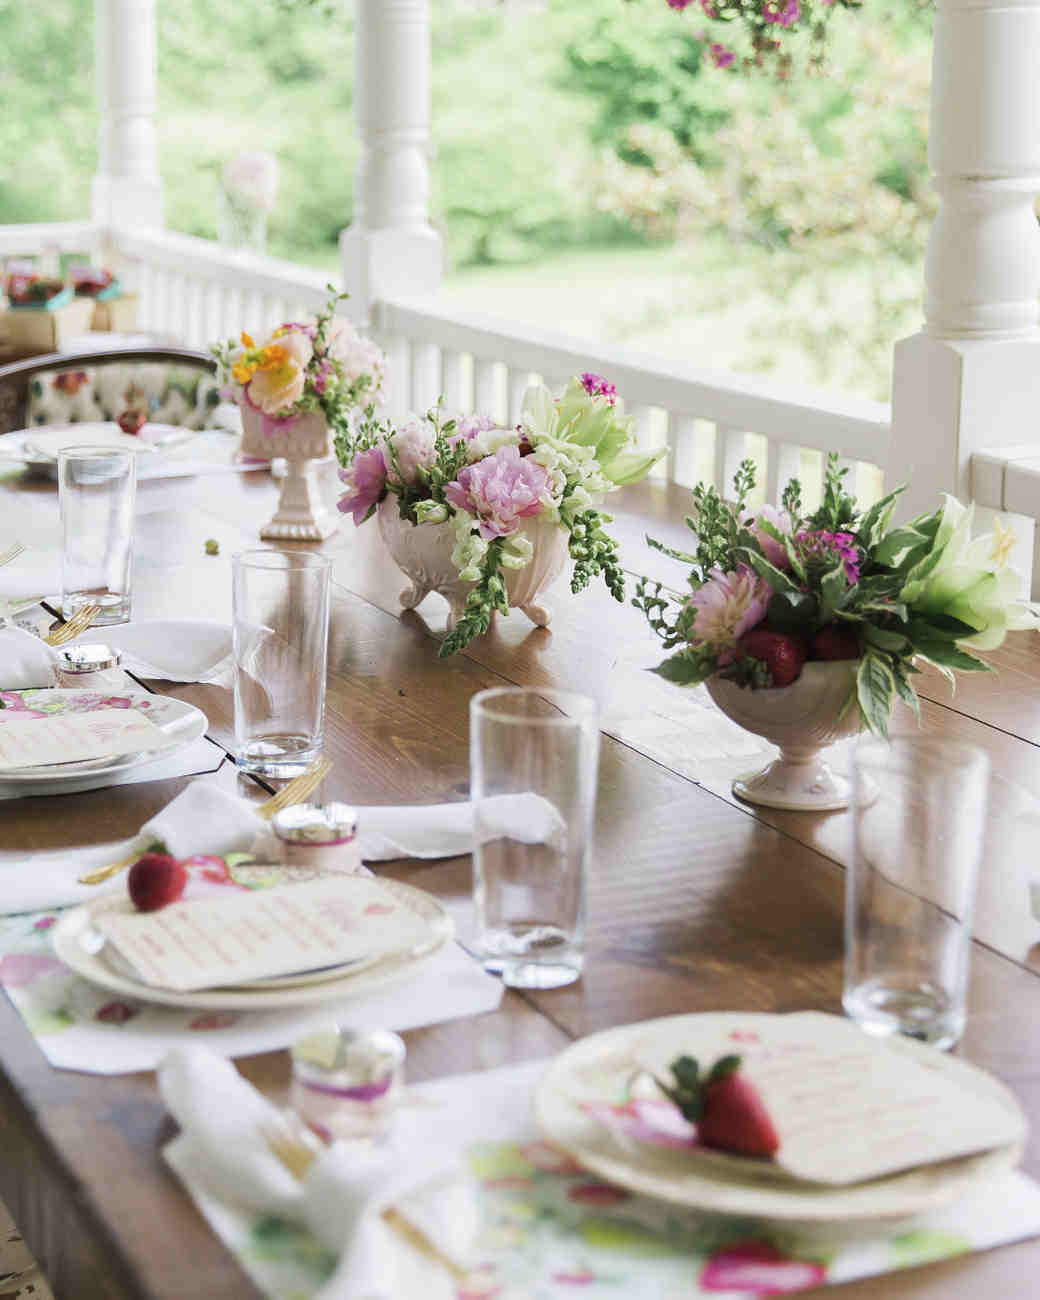 tablescape with flowers